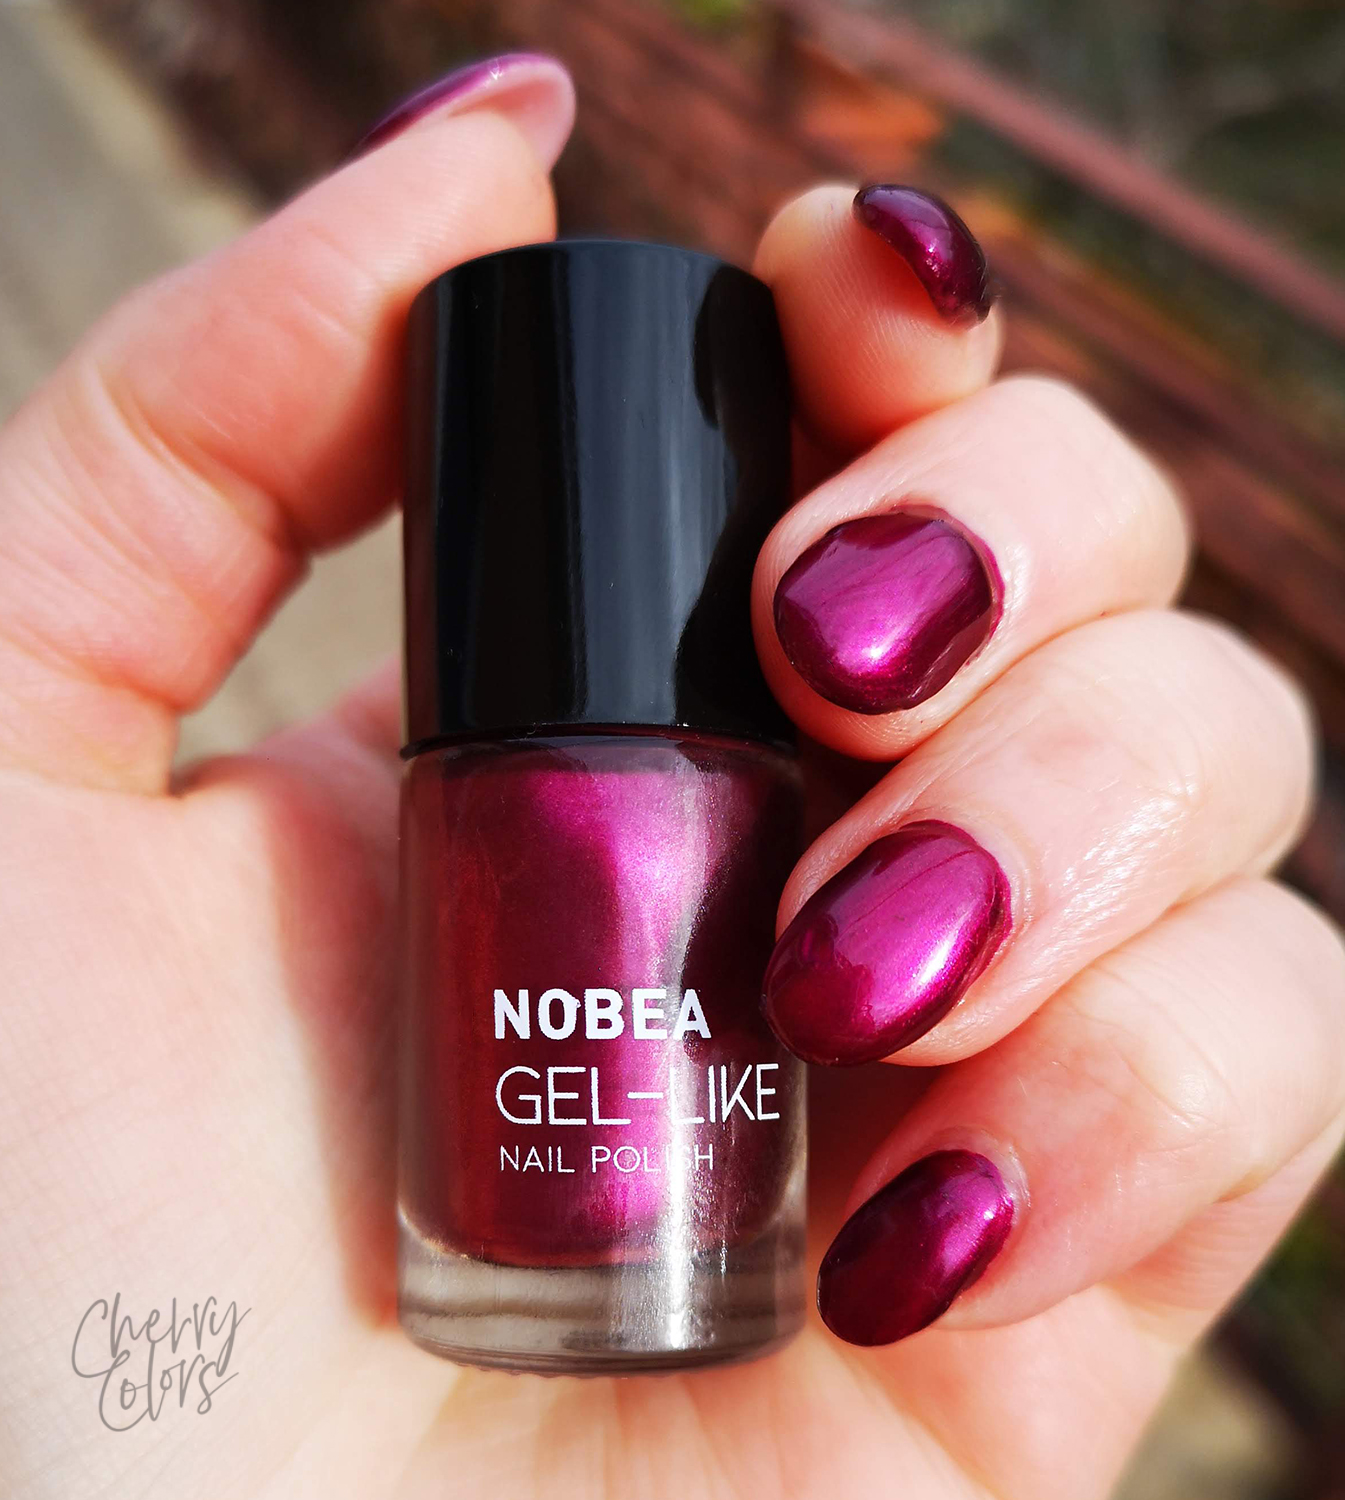 Nobea Day to day Rusty Jewels Nail Polish Set - royal purple